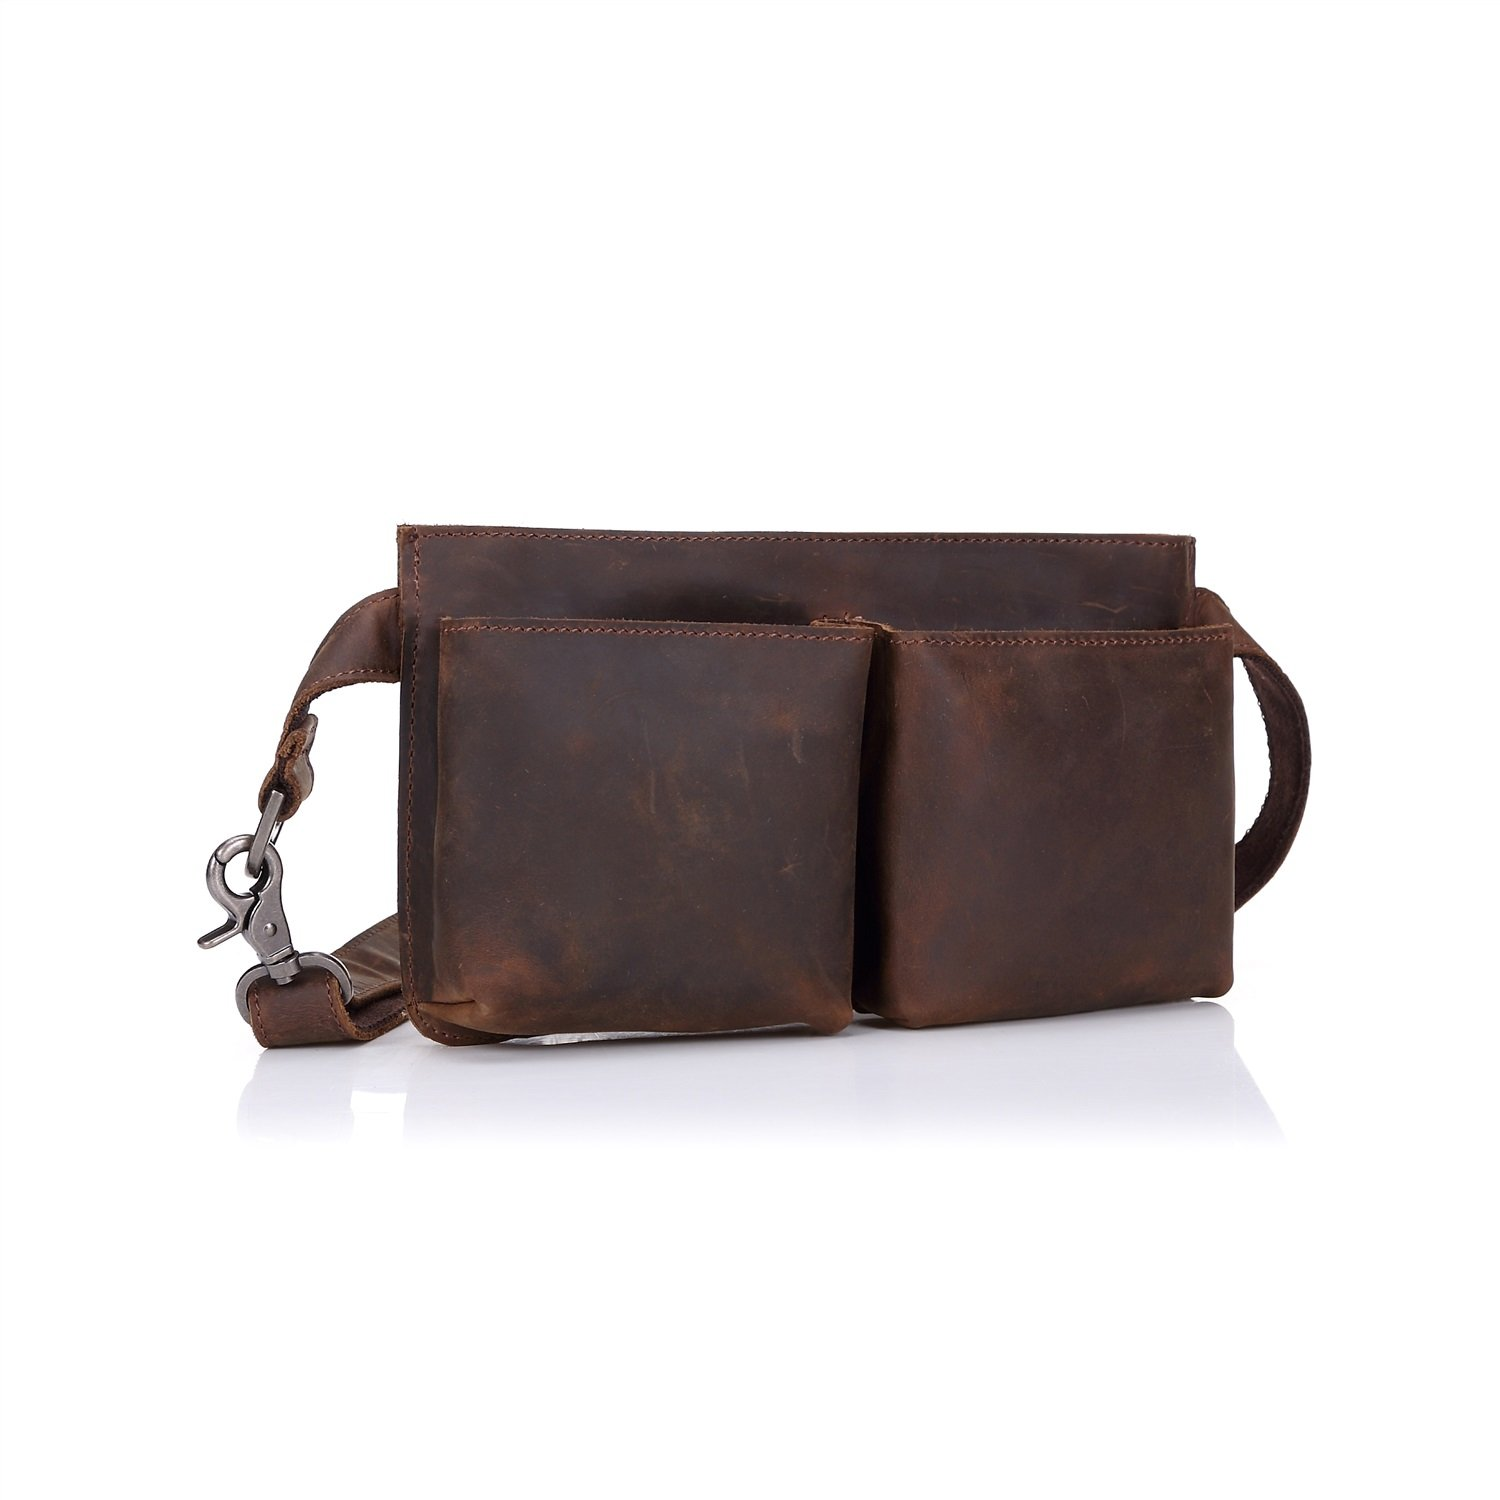 Shengjuanfeng Mens Waist Pack Leather Retro Crazy Leather First Layer Leather Shoulder Bag Color : Brown, Size : S